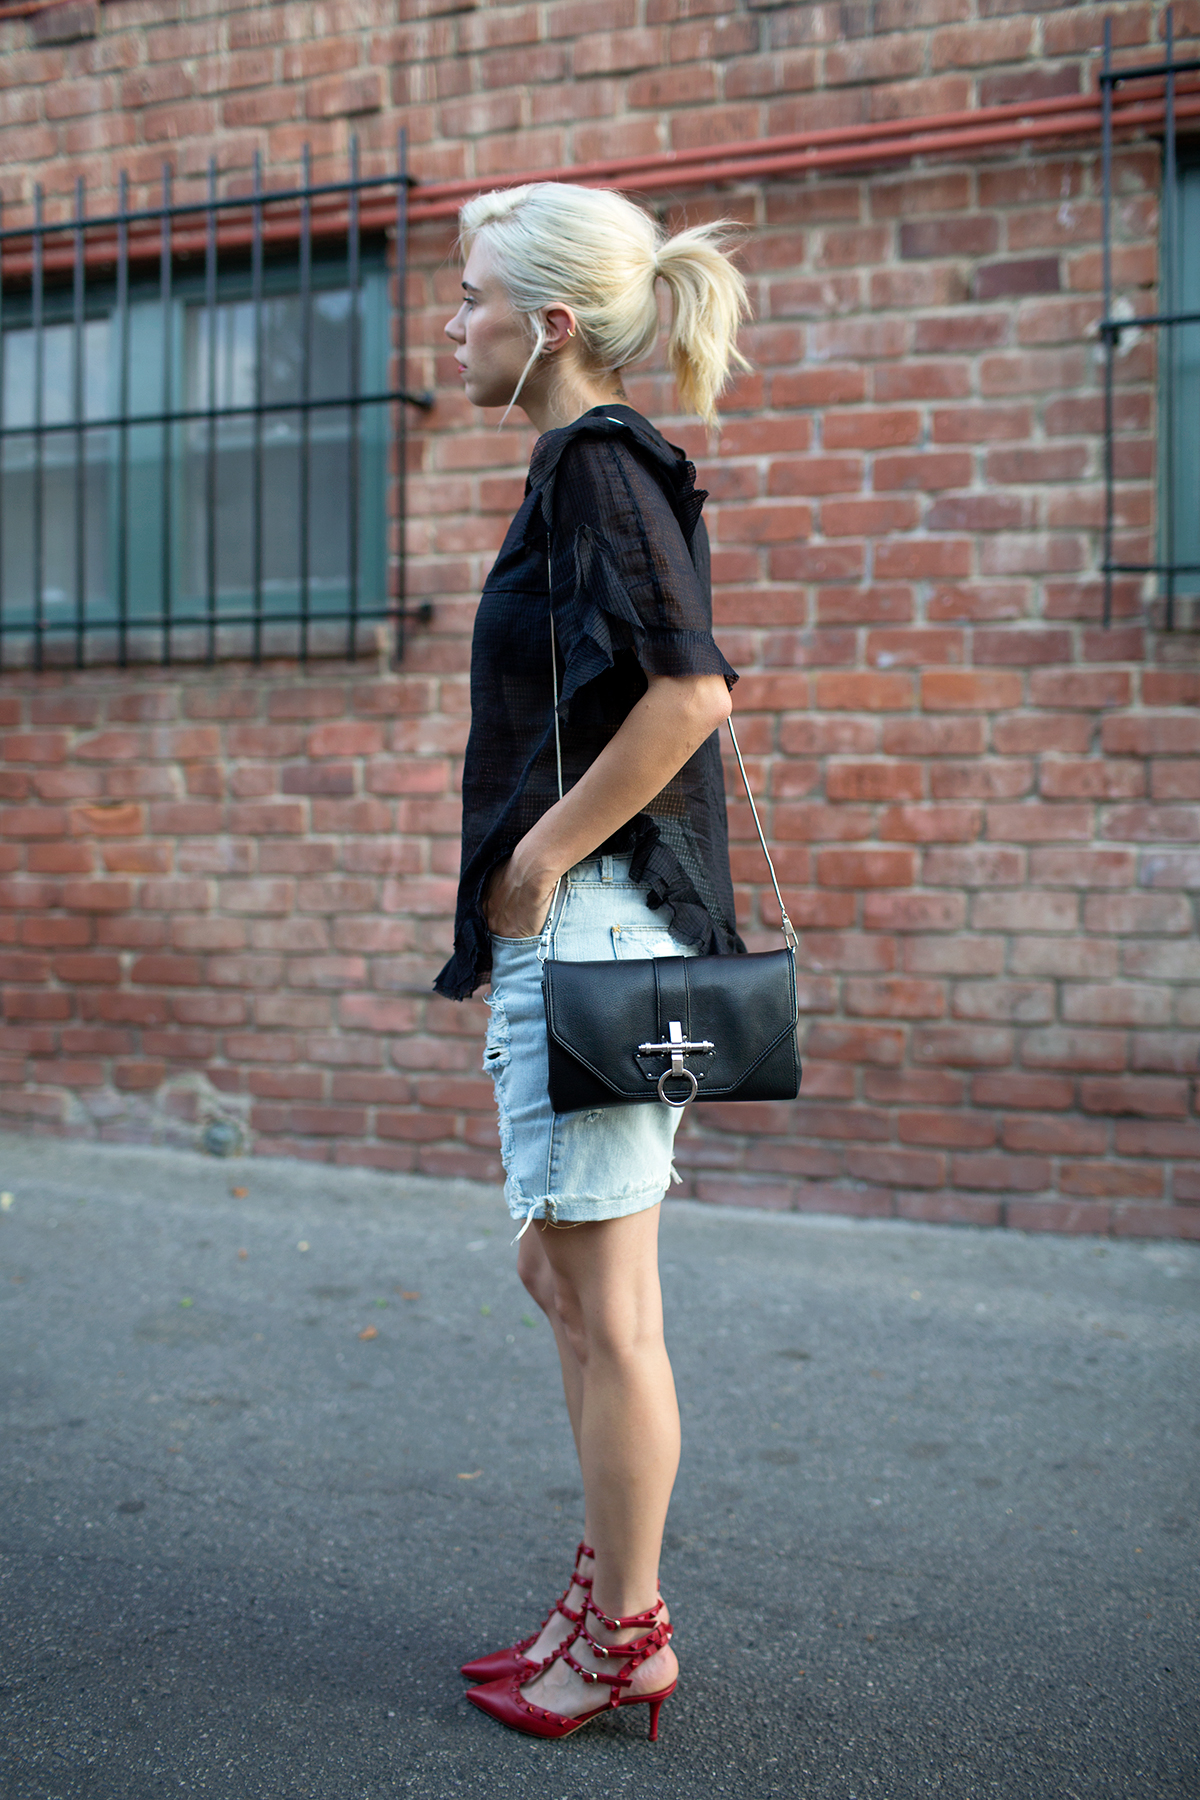 Courtney Trop is wearing a lace top from Isabel Marant, shorts from Res Denim, shoes from Valentino and bag from Givenchy